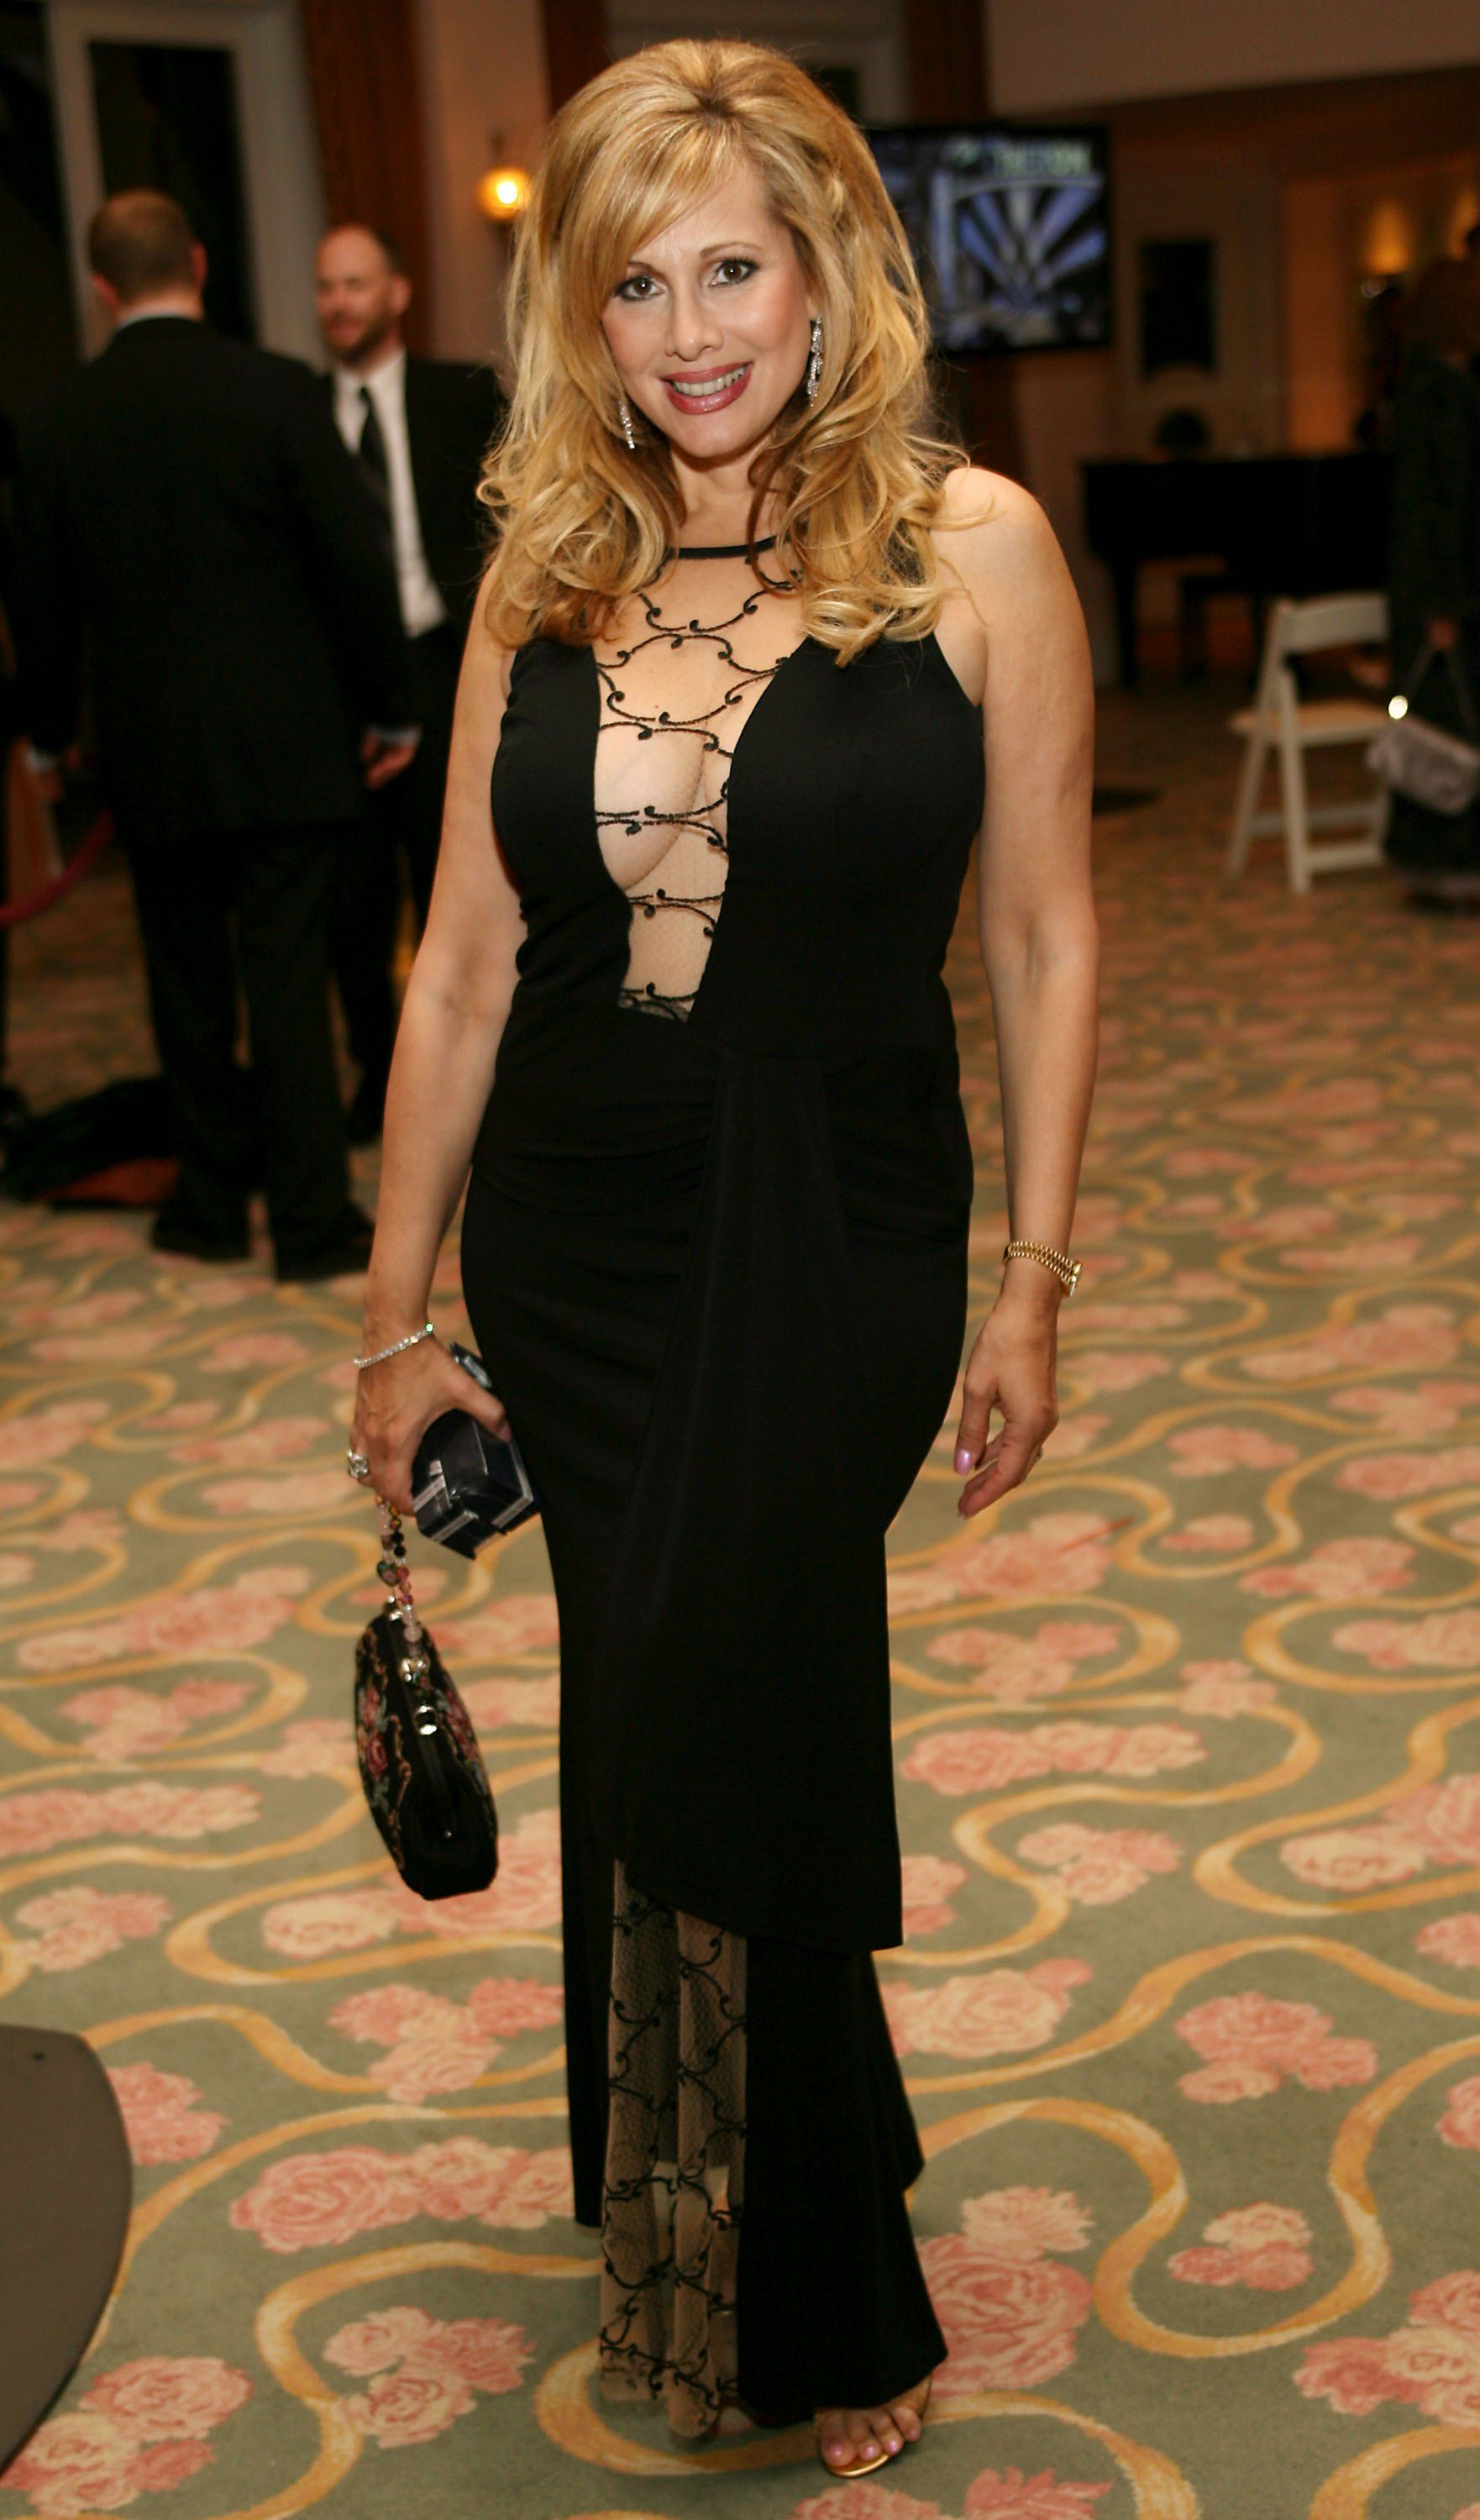 Rhonda Shear attends the Norby Walters' 16th Annual Night Of 100 Stars Oscar Gala held at the Beverly Hills Hotel on March 5, 2006 in Beverly Hills, California. | Source: Getty Images